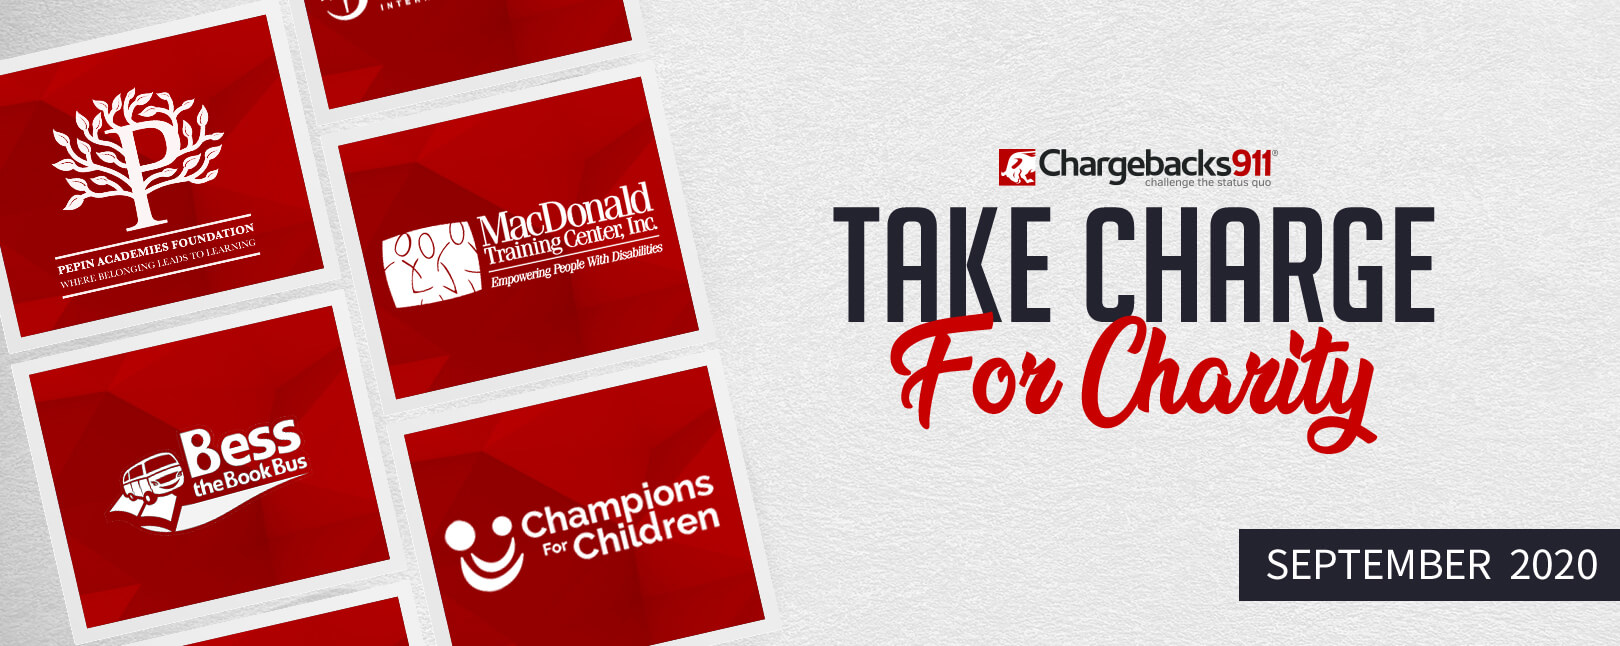 Take Charge for Charity – September 2020